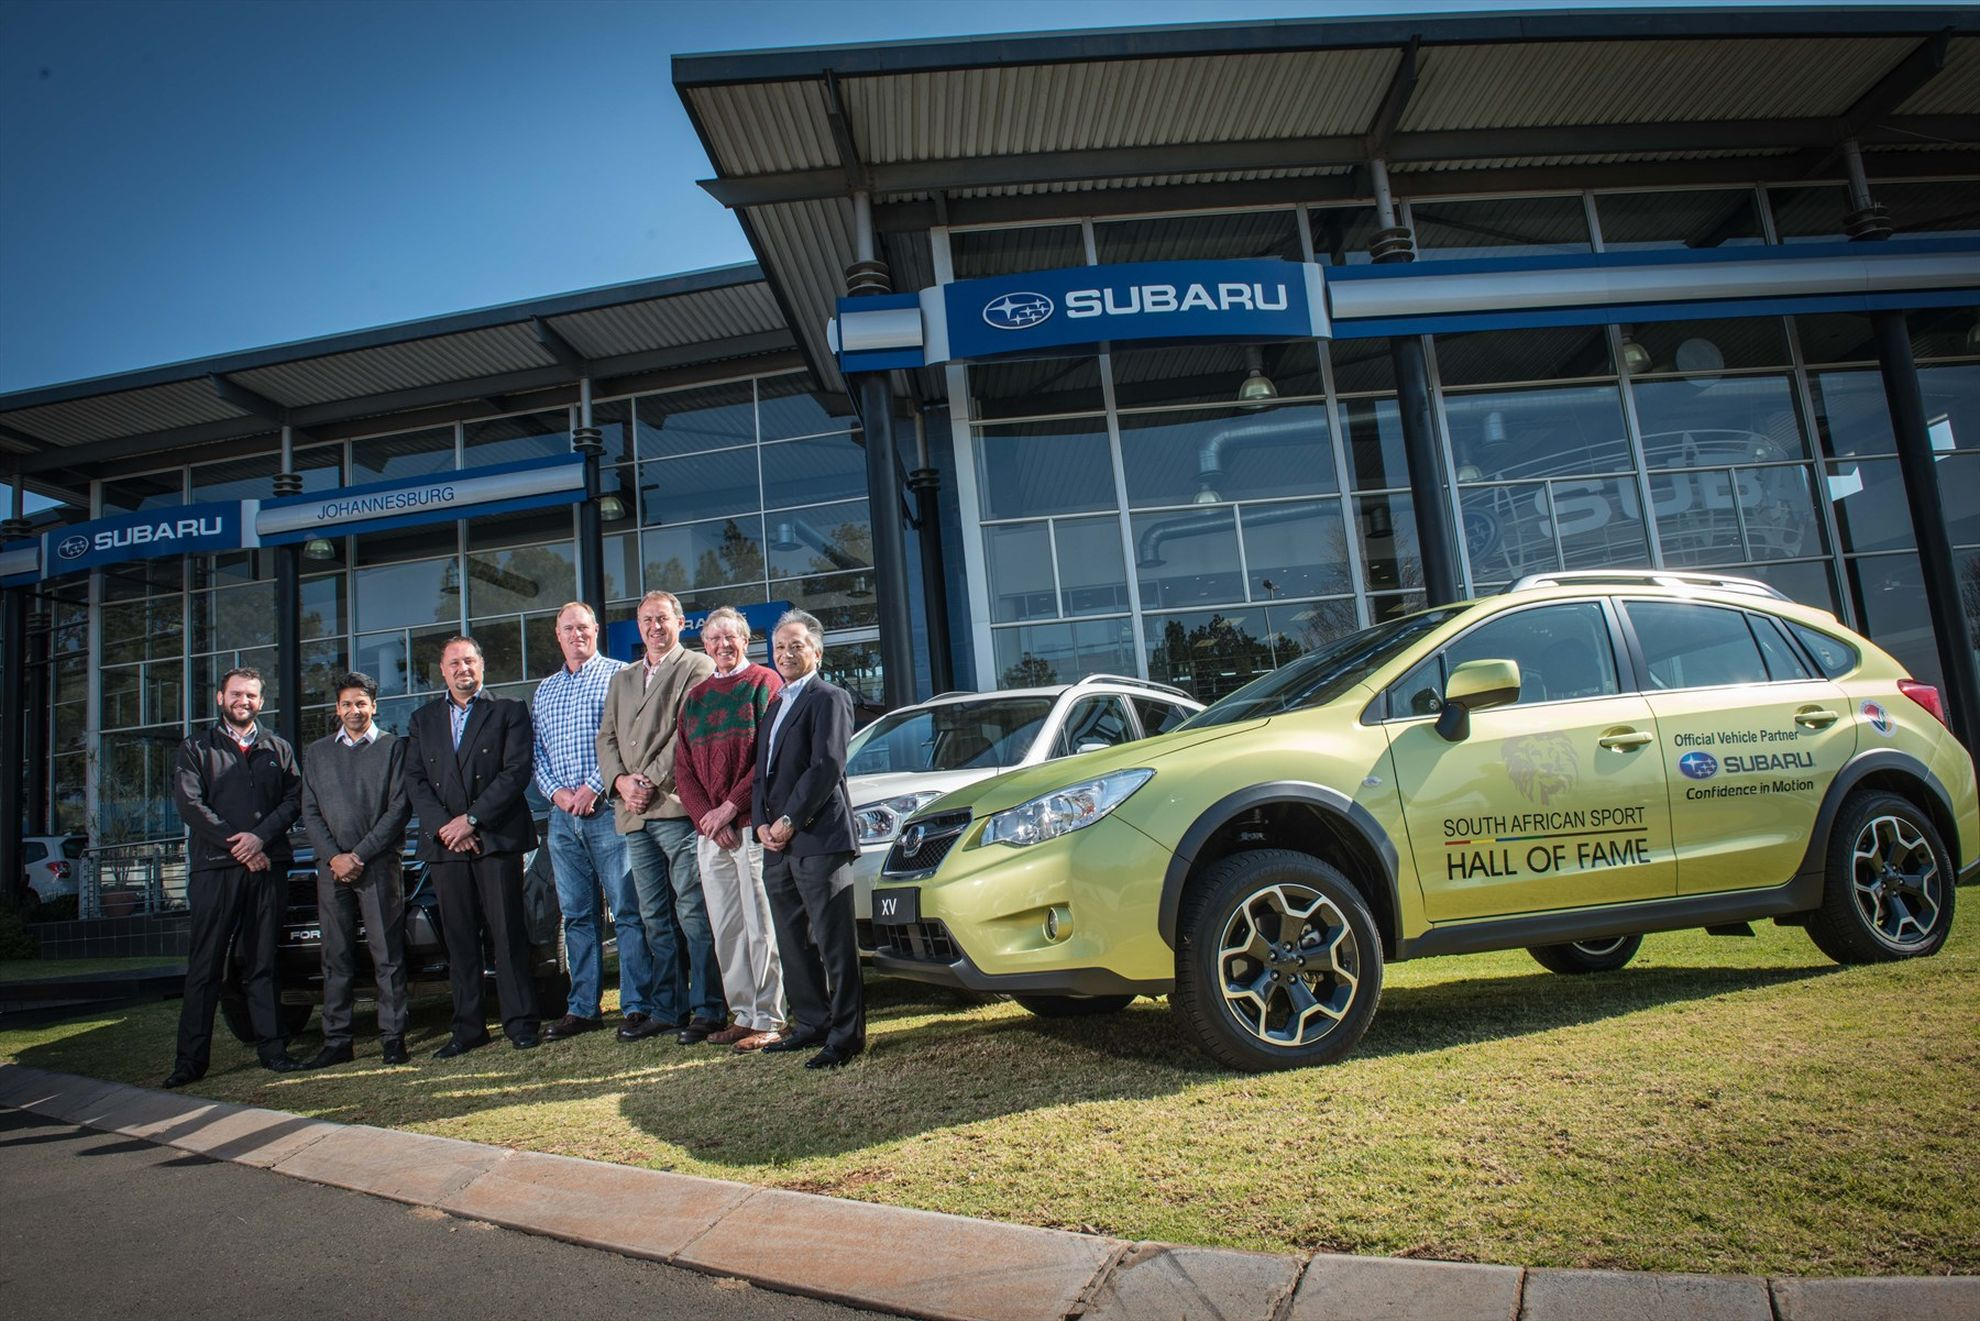 l-r-willem-reyneke-subaru-ashley-lazarus-subaru-rui-silva-coo-subaru-sa-eugene-lewis-ceo-sa-sport-hall-of-fame-johnny-burger-md-sa-sport-hall-of-fame-hugh-bladen-kazunori-suzuki-md-subaru-sa